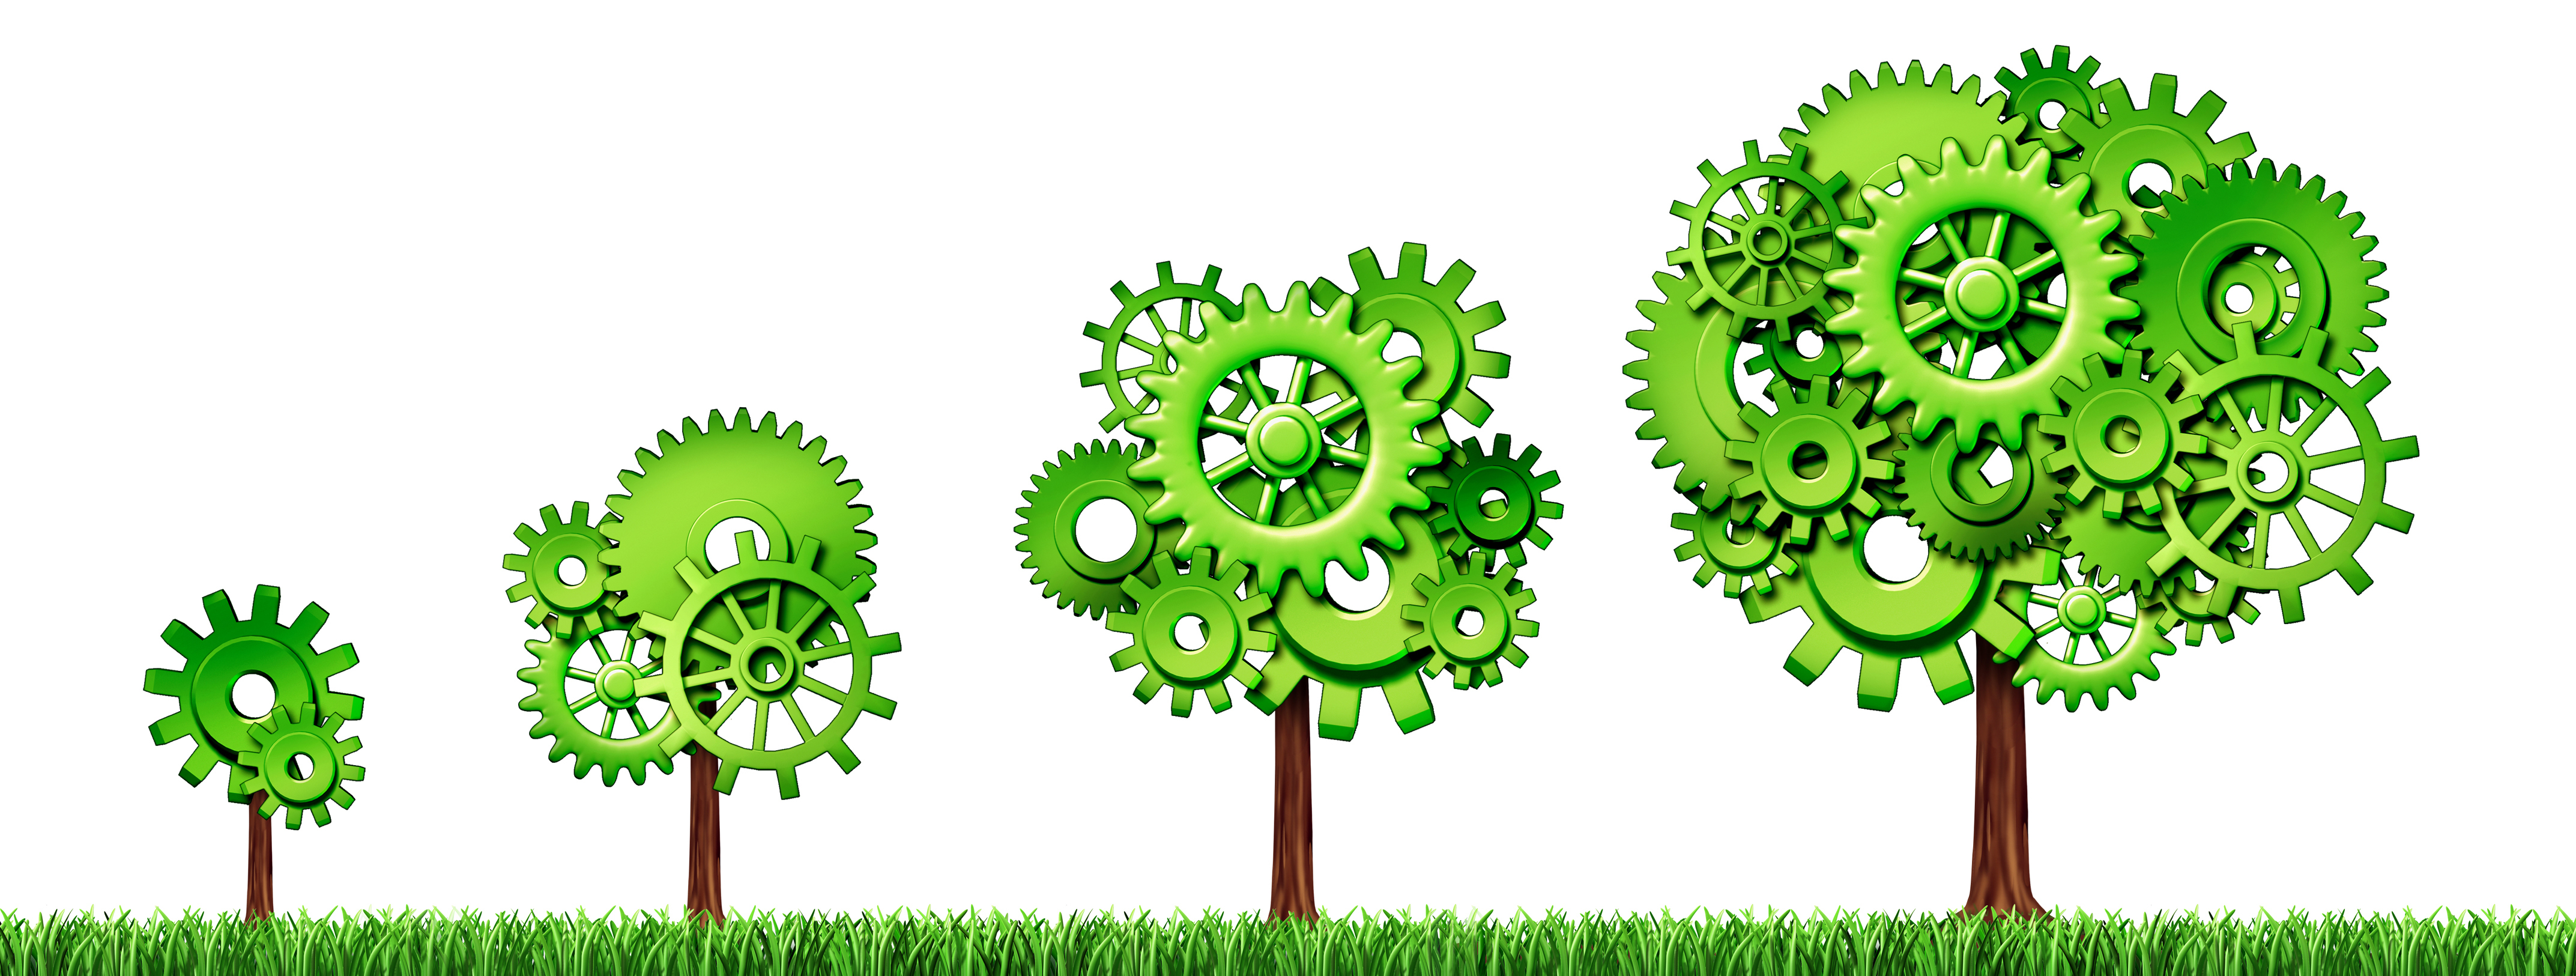 Simple Steps on How to Make Your Small Business Green